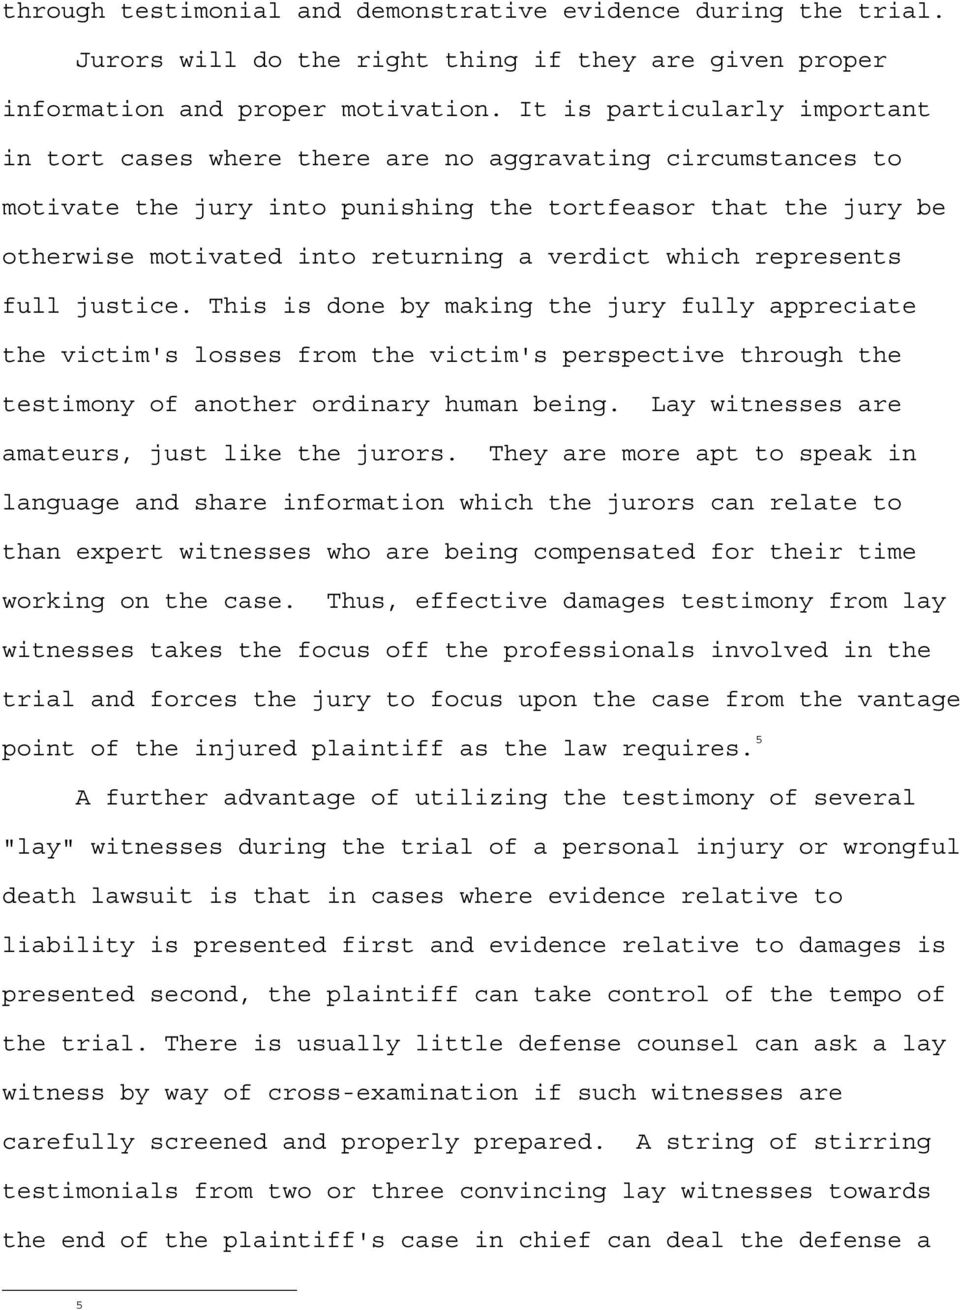 verdict which represents full justice. This is done by making the jury fully appreciate the victim's losses from the victim's perspective through the testimony of another ordinary human being.